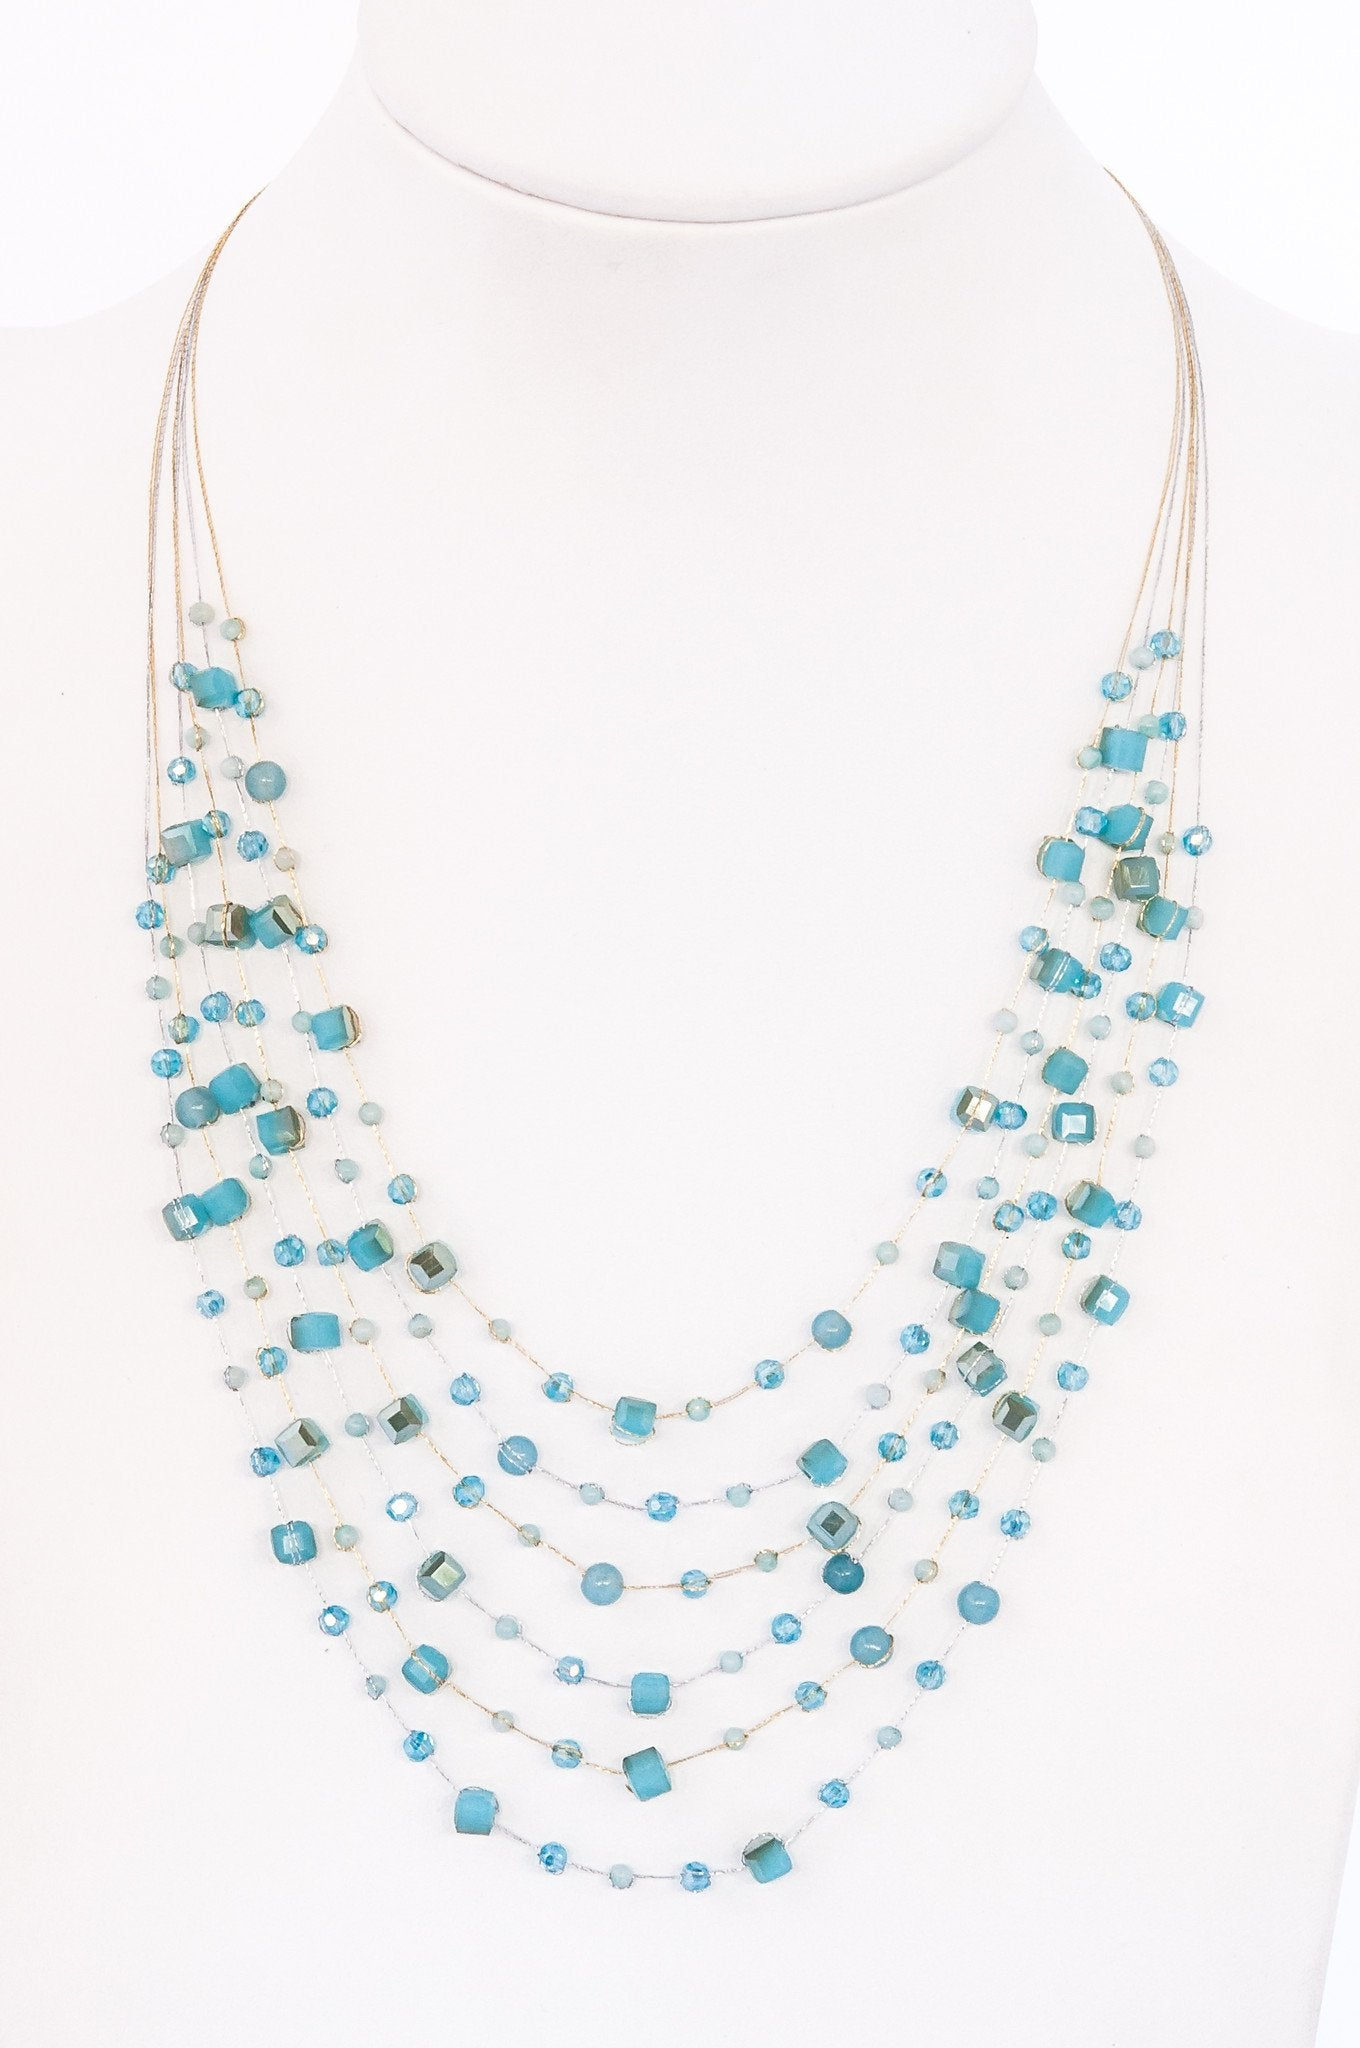 This is a layered bib necklace made with silk thread and hand-tied crystals both round and square. It's sexy, simple, and sophisticated.